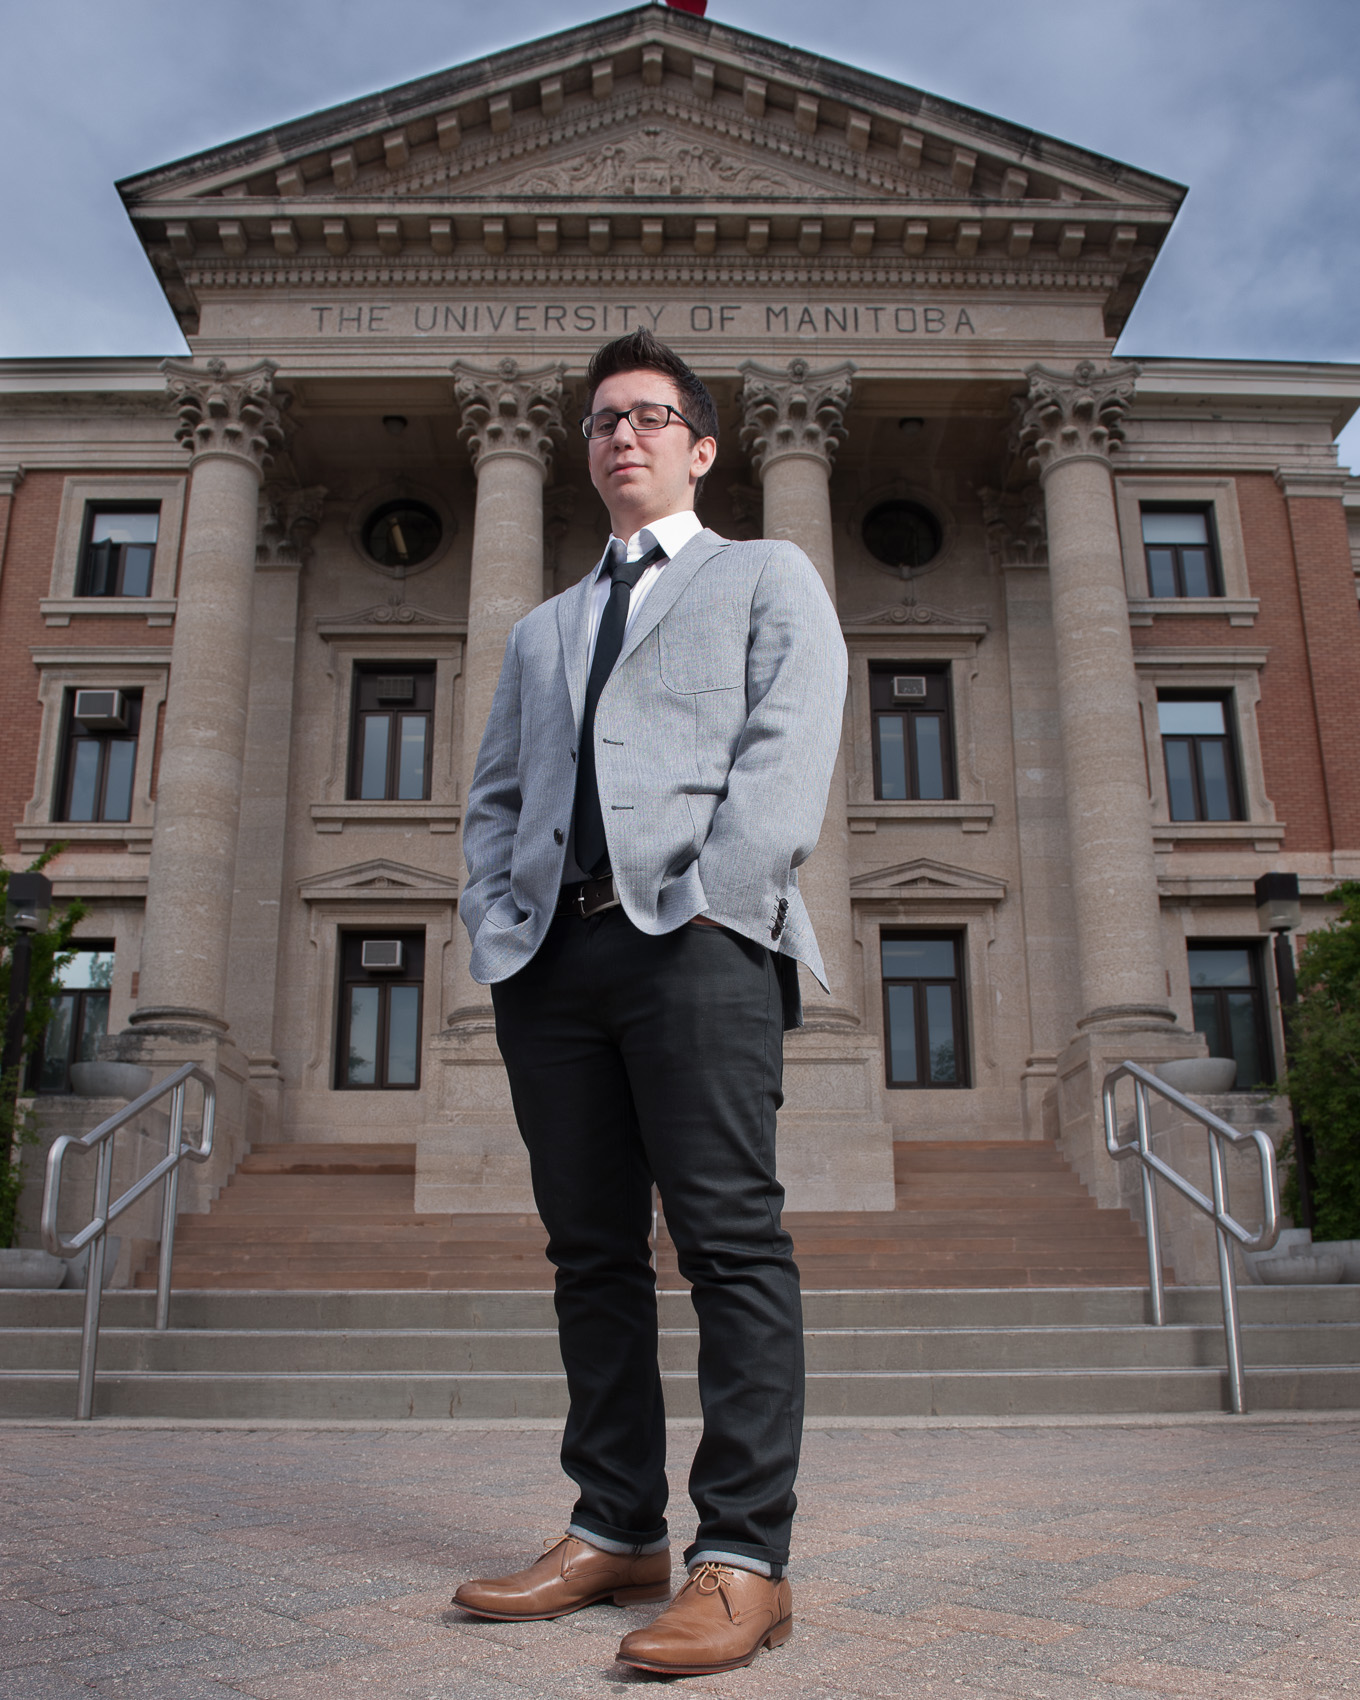 university of manitoba student commercial photographer Thomas Fricke